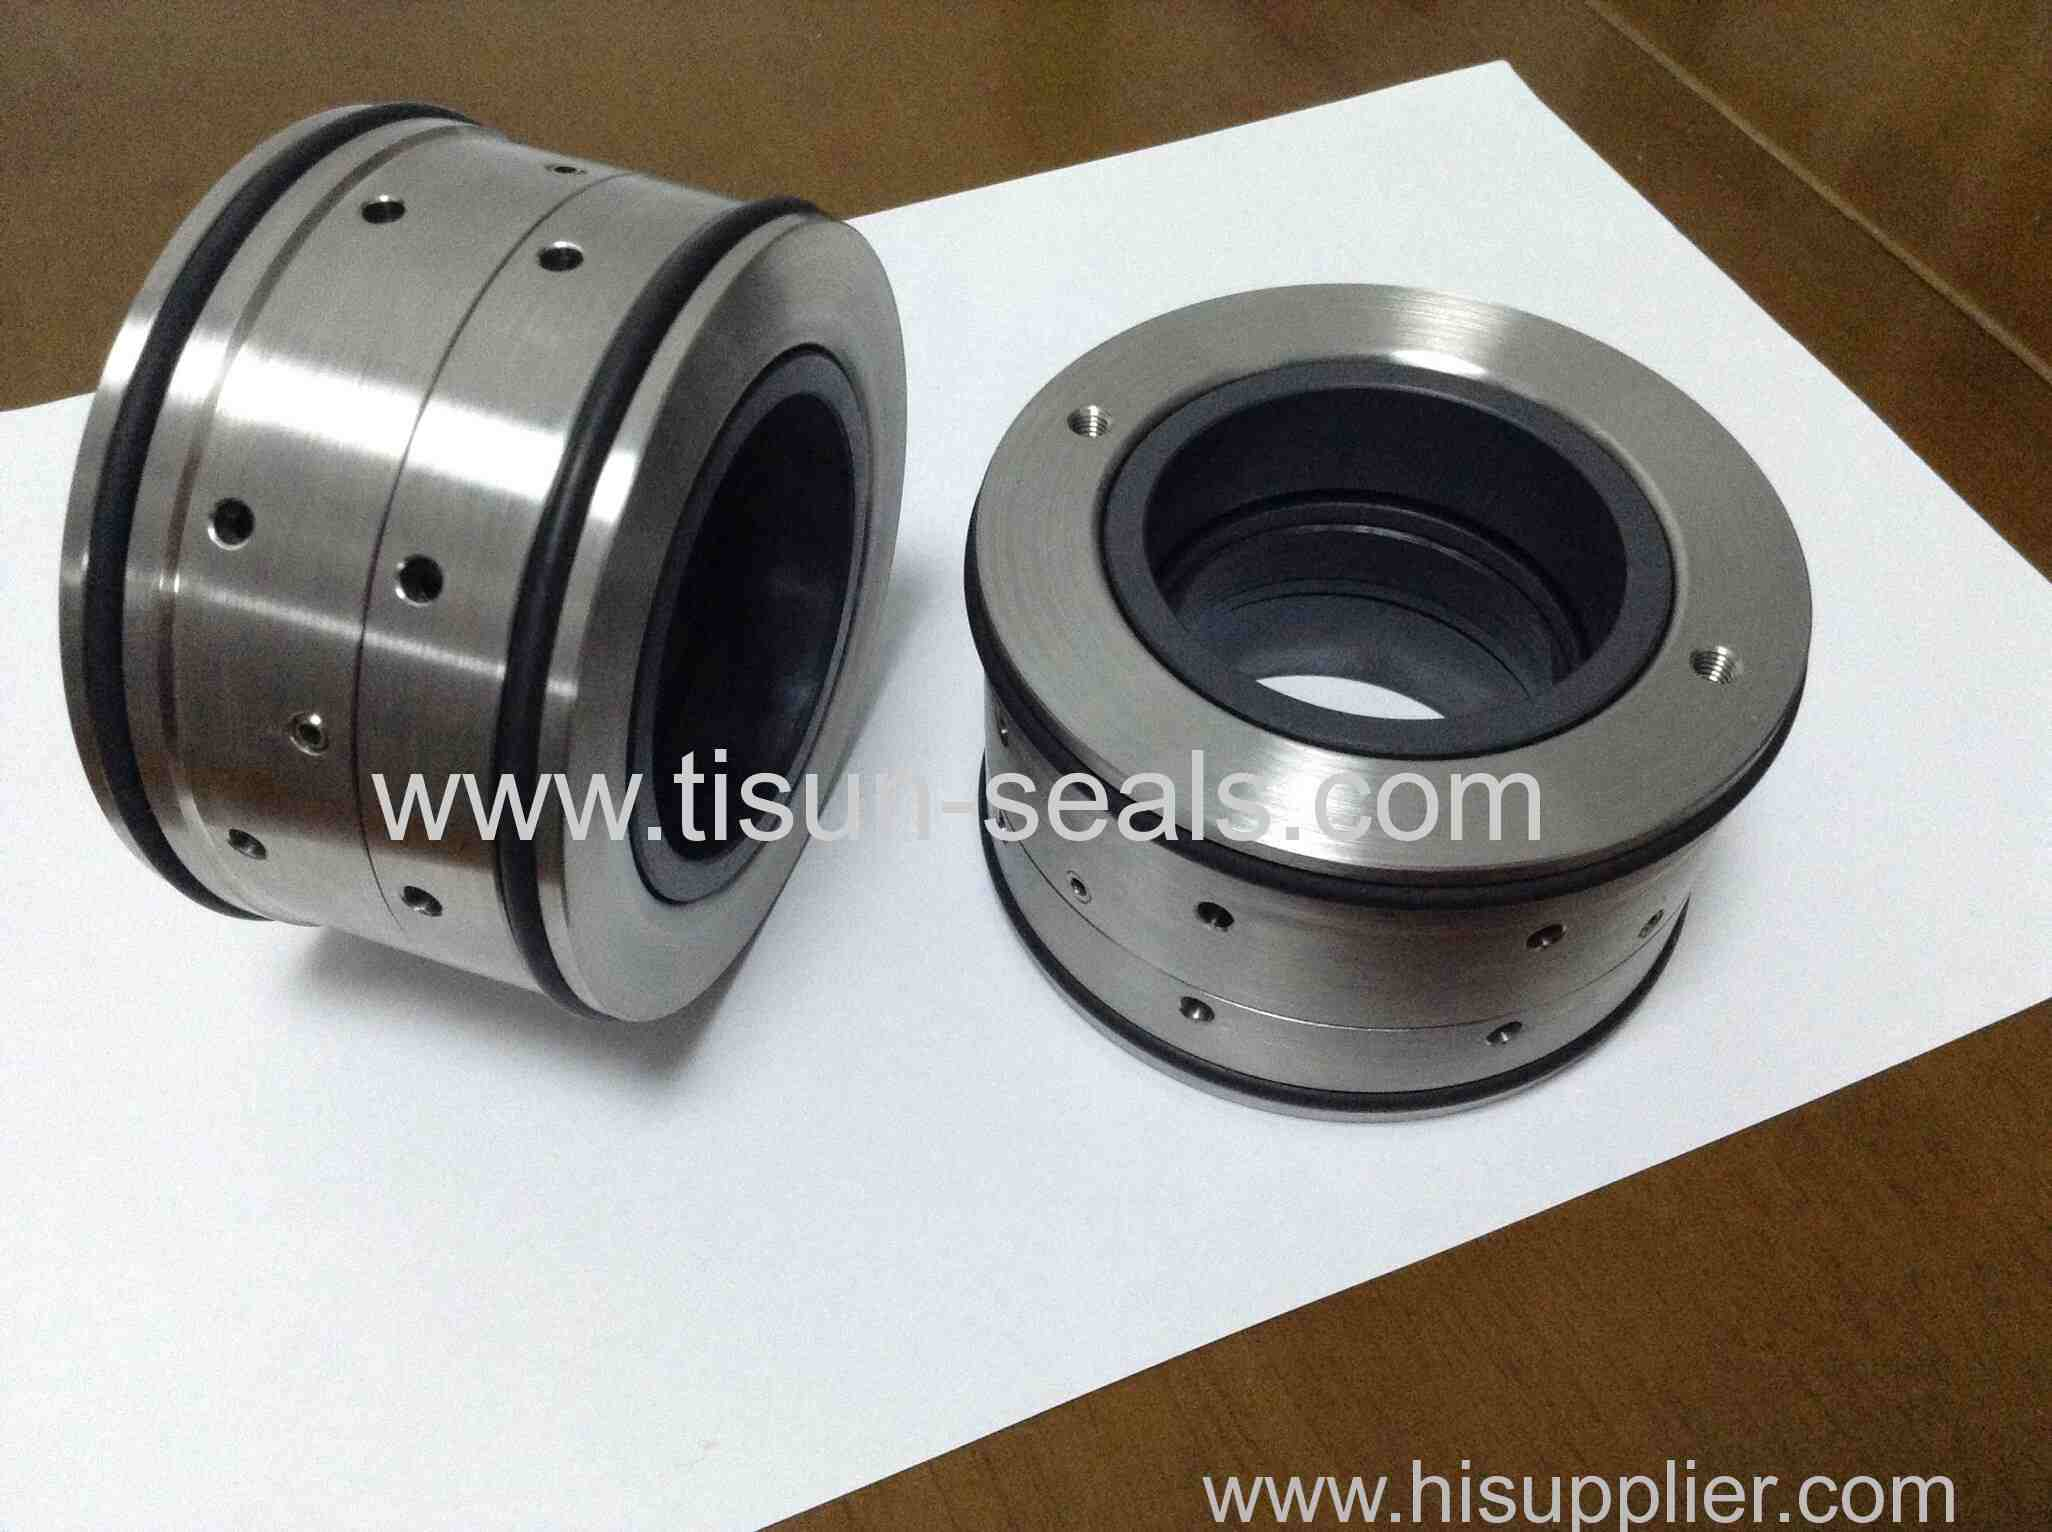 Mechanical seal's Advantages